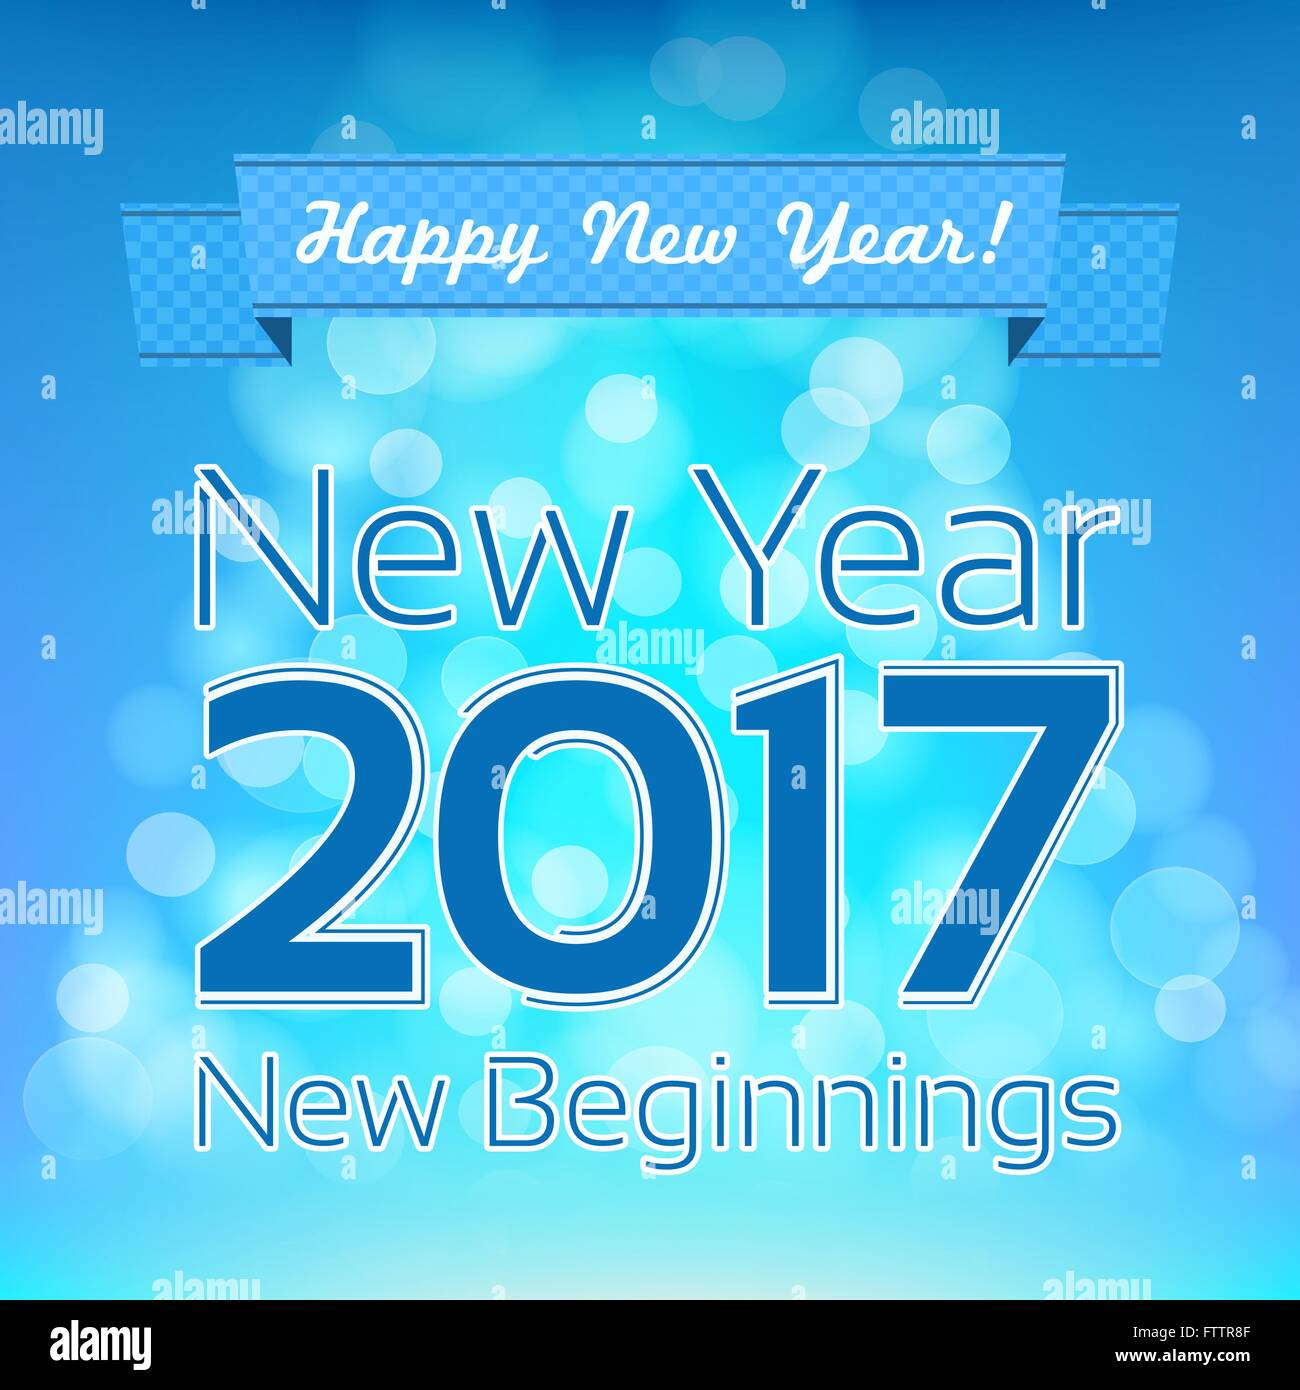 happy new year greeting vector design template new year 2017 new beginnings aqua and blue colors blurred background